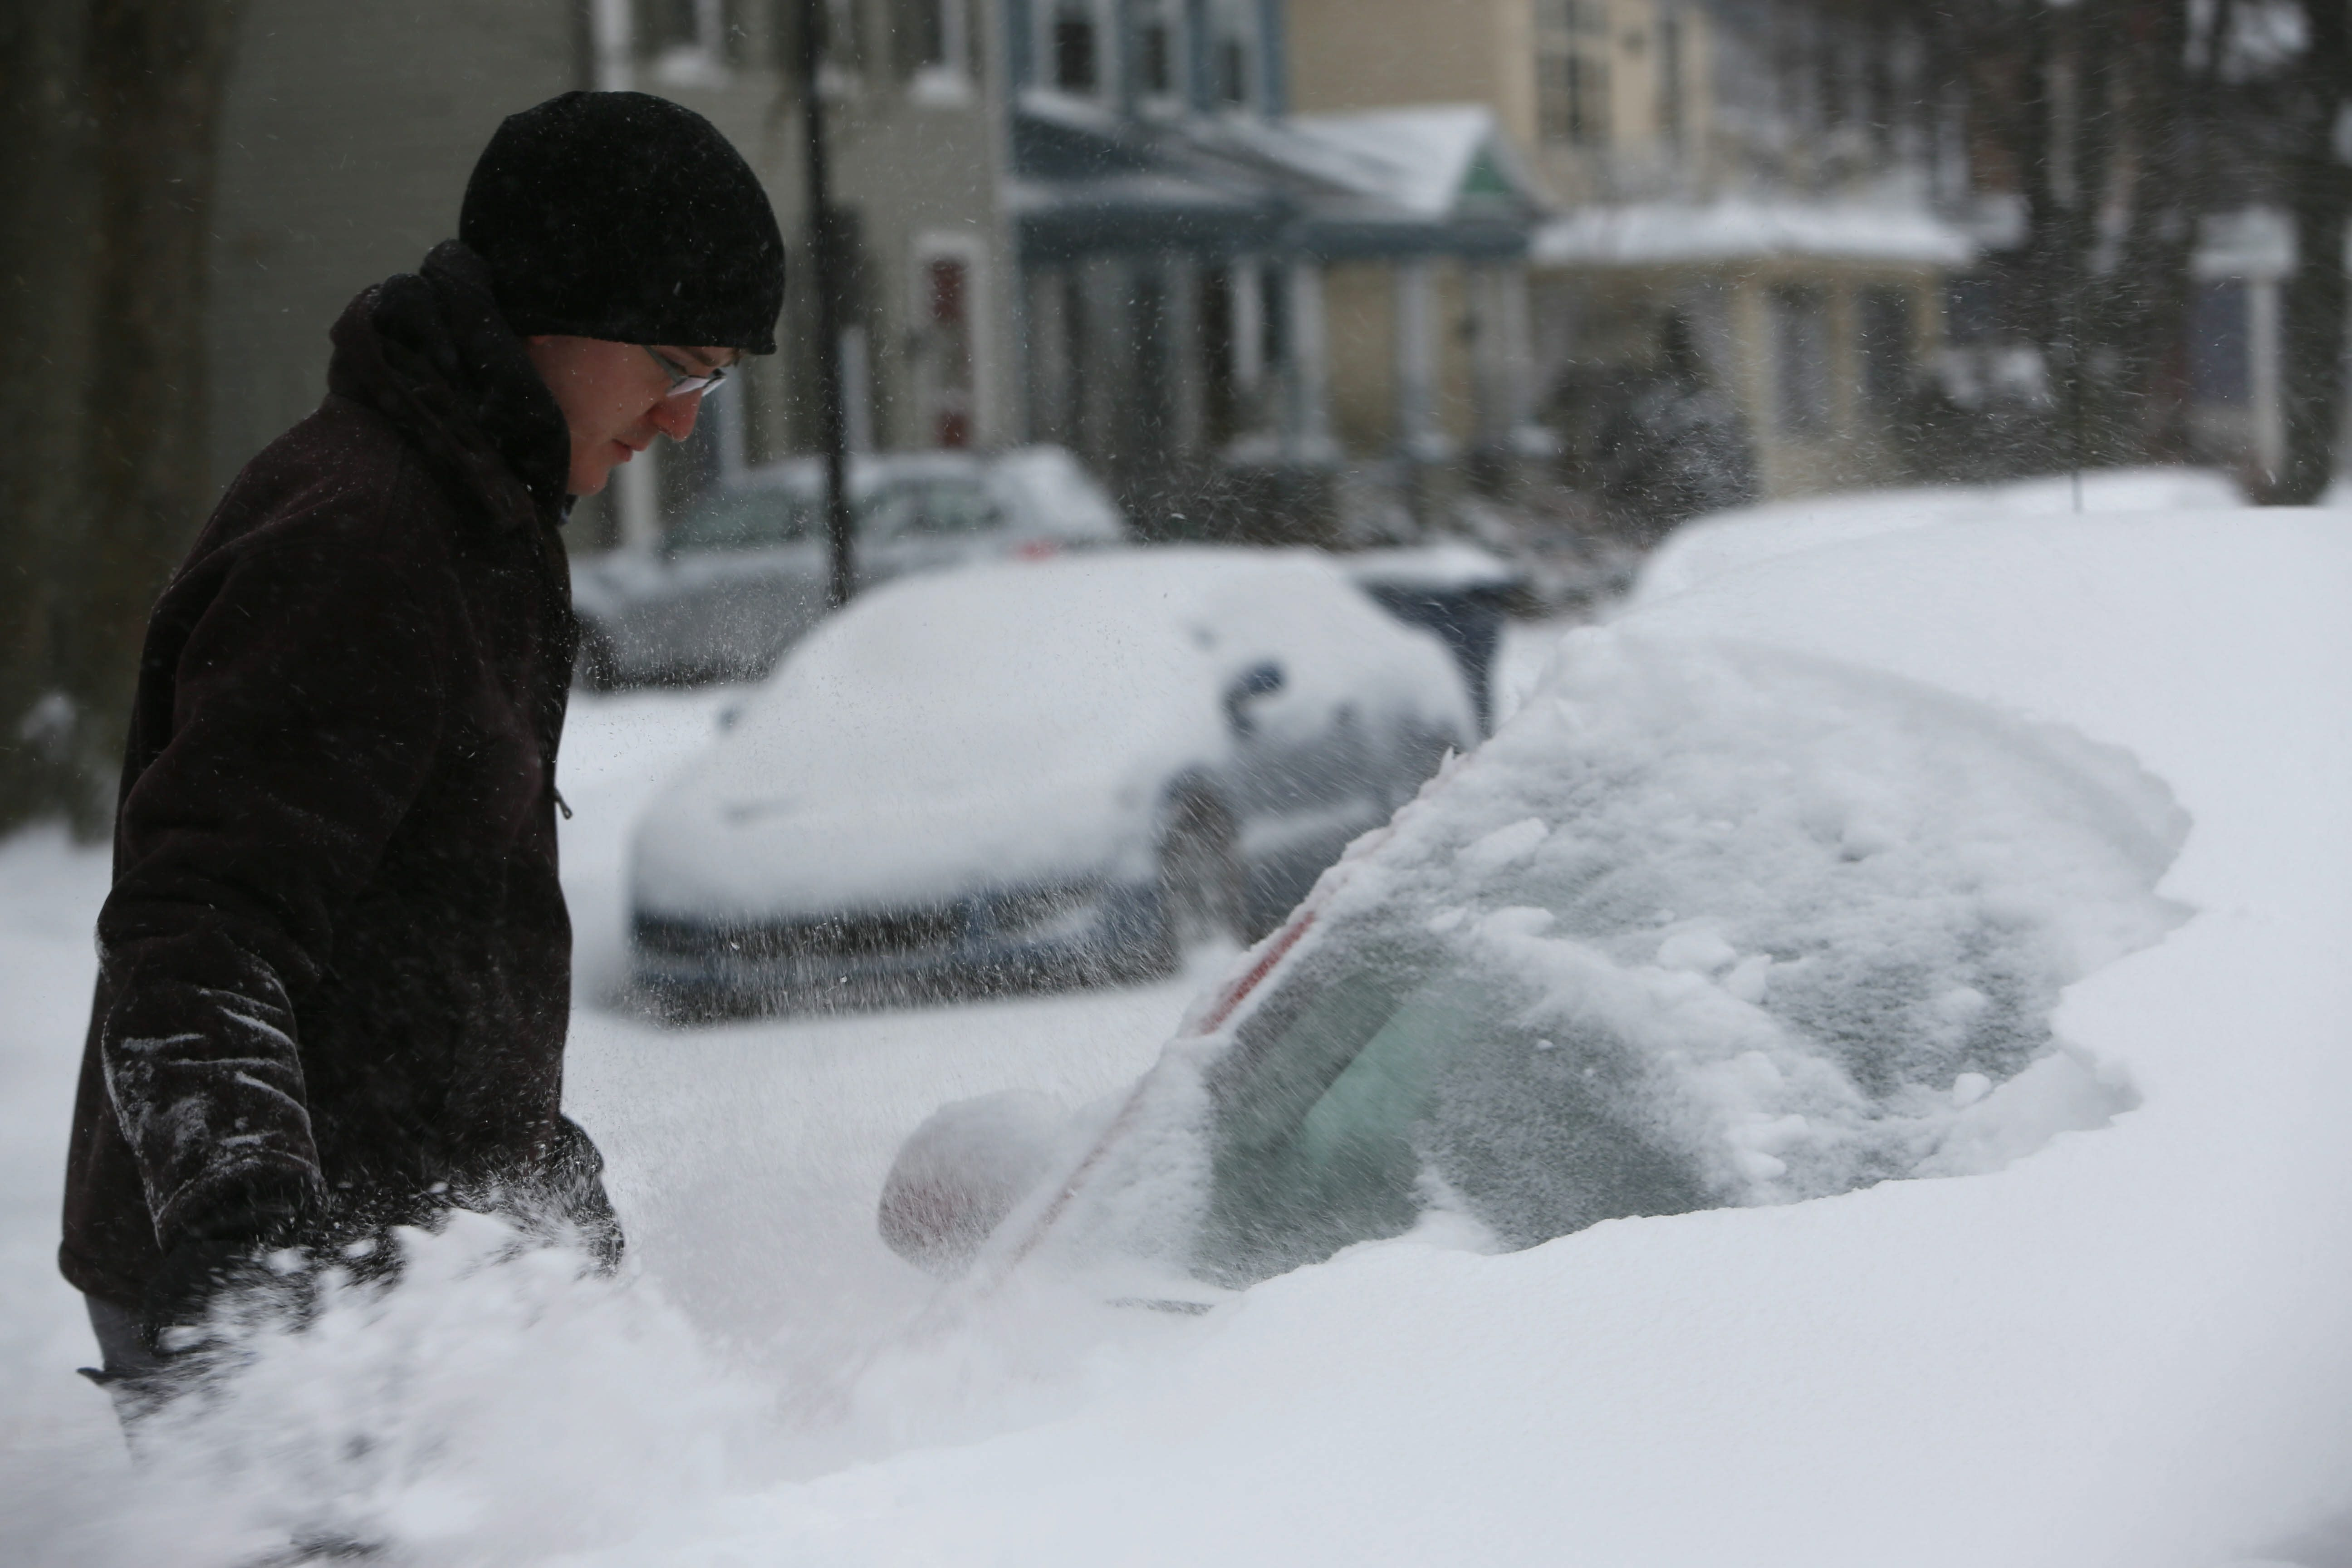 Ryan Burdick clears snow off his car on Norwood Avenue earlier this month.